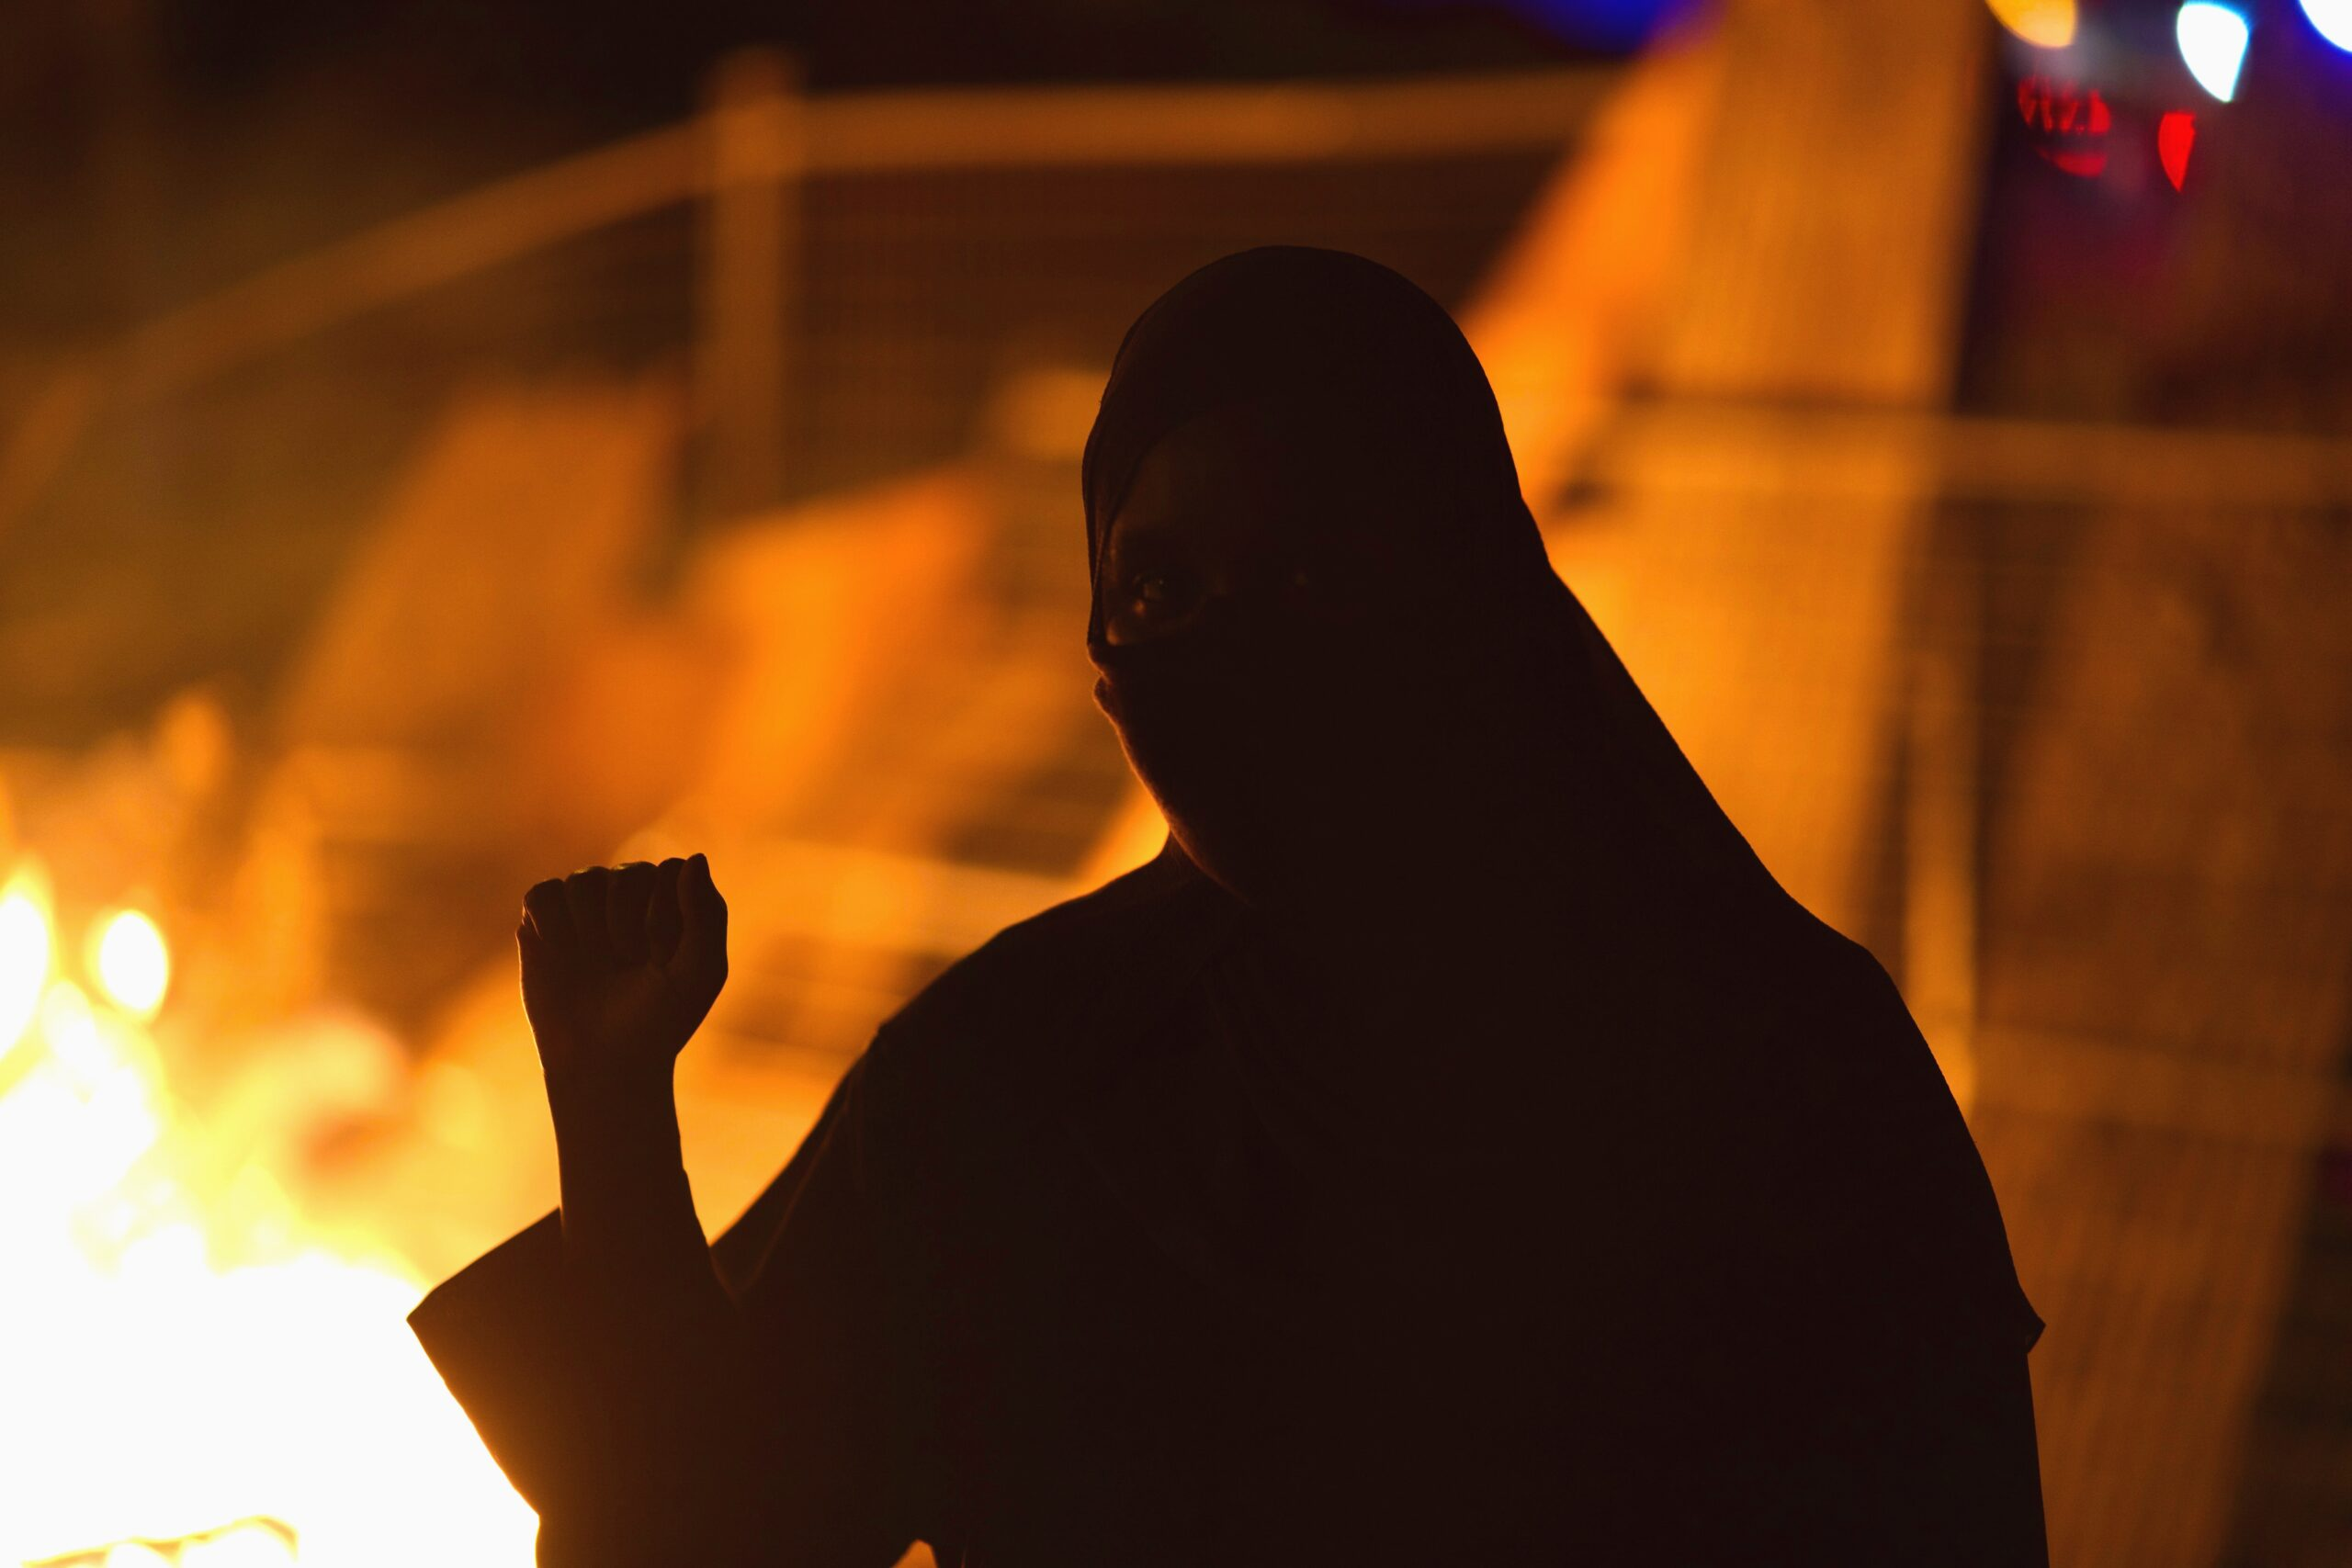 Silhouette of a person with fist raised, with fire glowing in background.